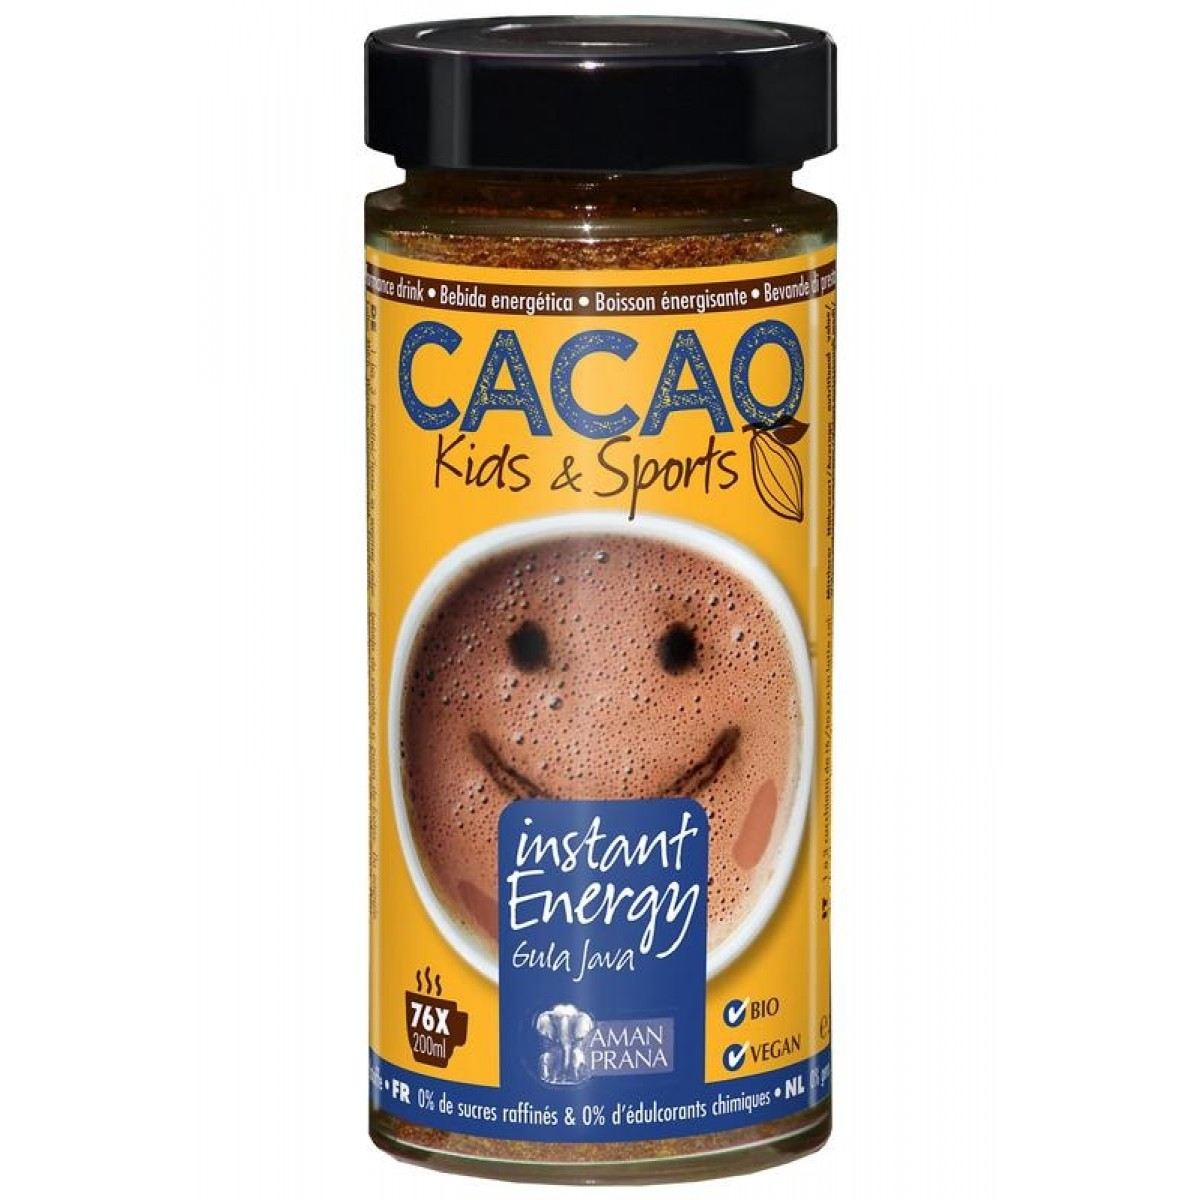 Instant Energy Cacao Kids & Sports